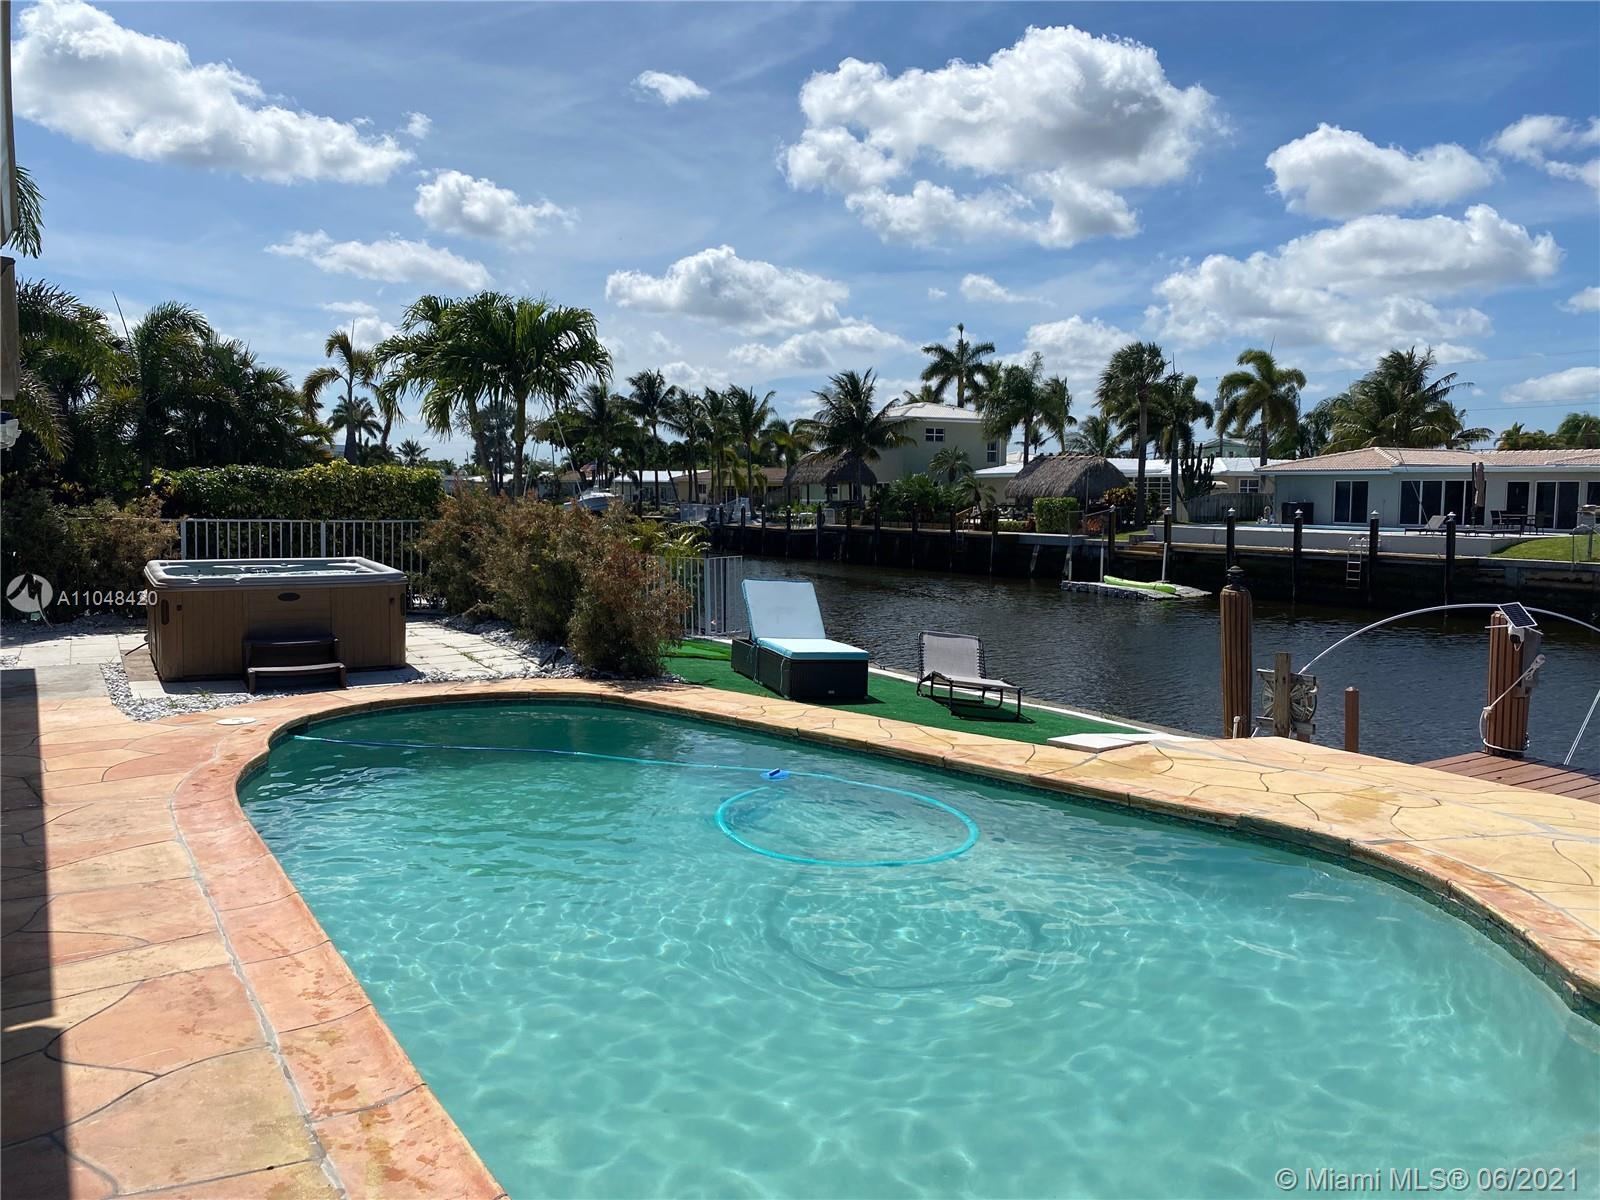 PRIME LOCATION on the Intercoastal Waters (Pompano Canal) within a 20 minute boat ride to the ocean. LARGE 70 ft private dock access. This stylish home has an open floor plan in Garden Isles (minutes to Fort Lauderdale) that comes with large living space and large rooms: 3 bedrooms, 2 full baths, Living Rm, Family Rm, Large Laundry Room, New Shed, New Pool Heater, BEAUTIFUL PRIVATE OASIS HOT TUB, private pool, mini putt golf, screened in patio, large circular driveway (can easily park 6 cars), security cameras, keyless entry, nest thermostat, modern lighting fixtures, 2 car carport with storage closets, and gorgeous views. See video.